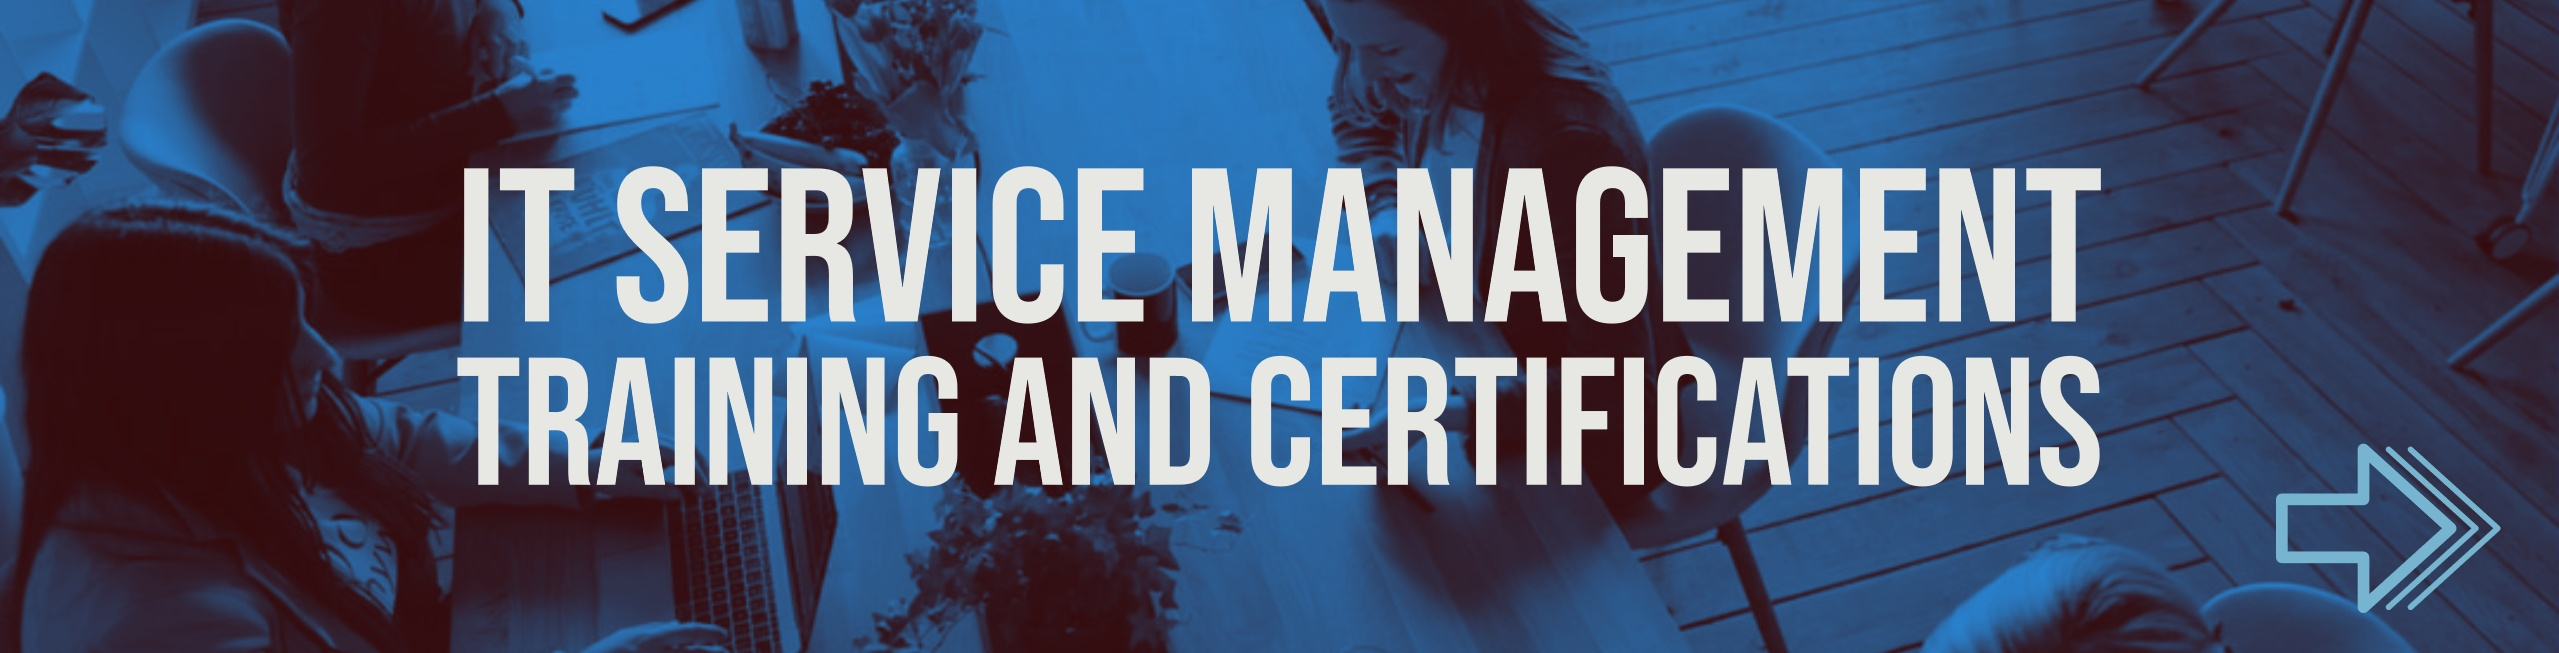 IT Service Management Training and Certifications